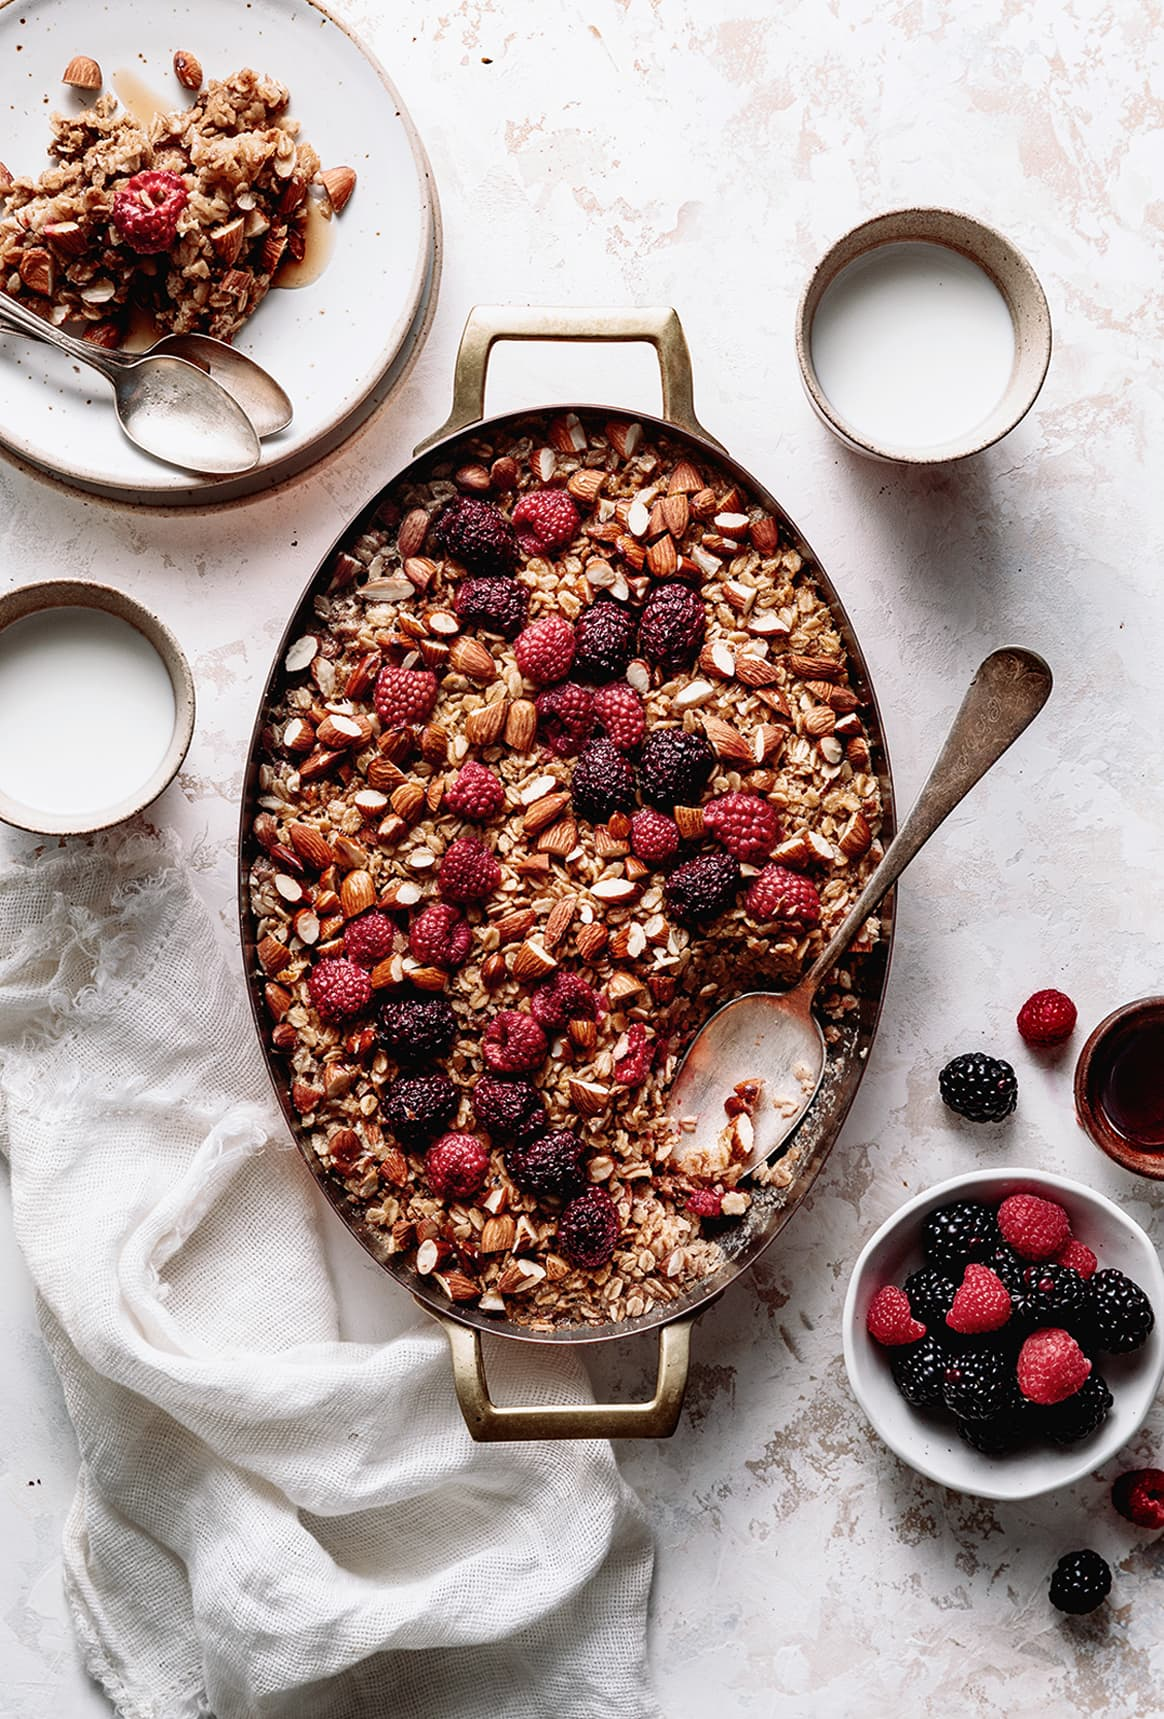 Warm Almond and Berries Baked Oatmeal sweetened with maple and brown sugar and topped with fresh berries. A cozy breakfast casserole for the whole family!